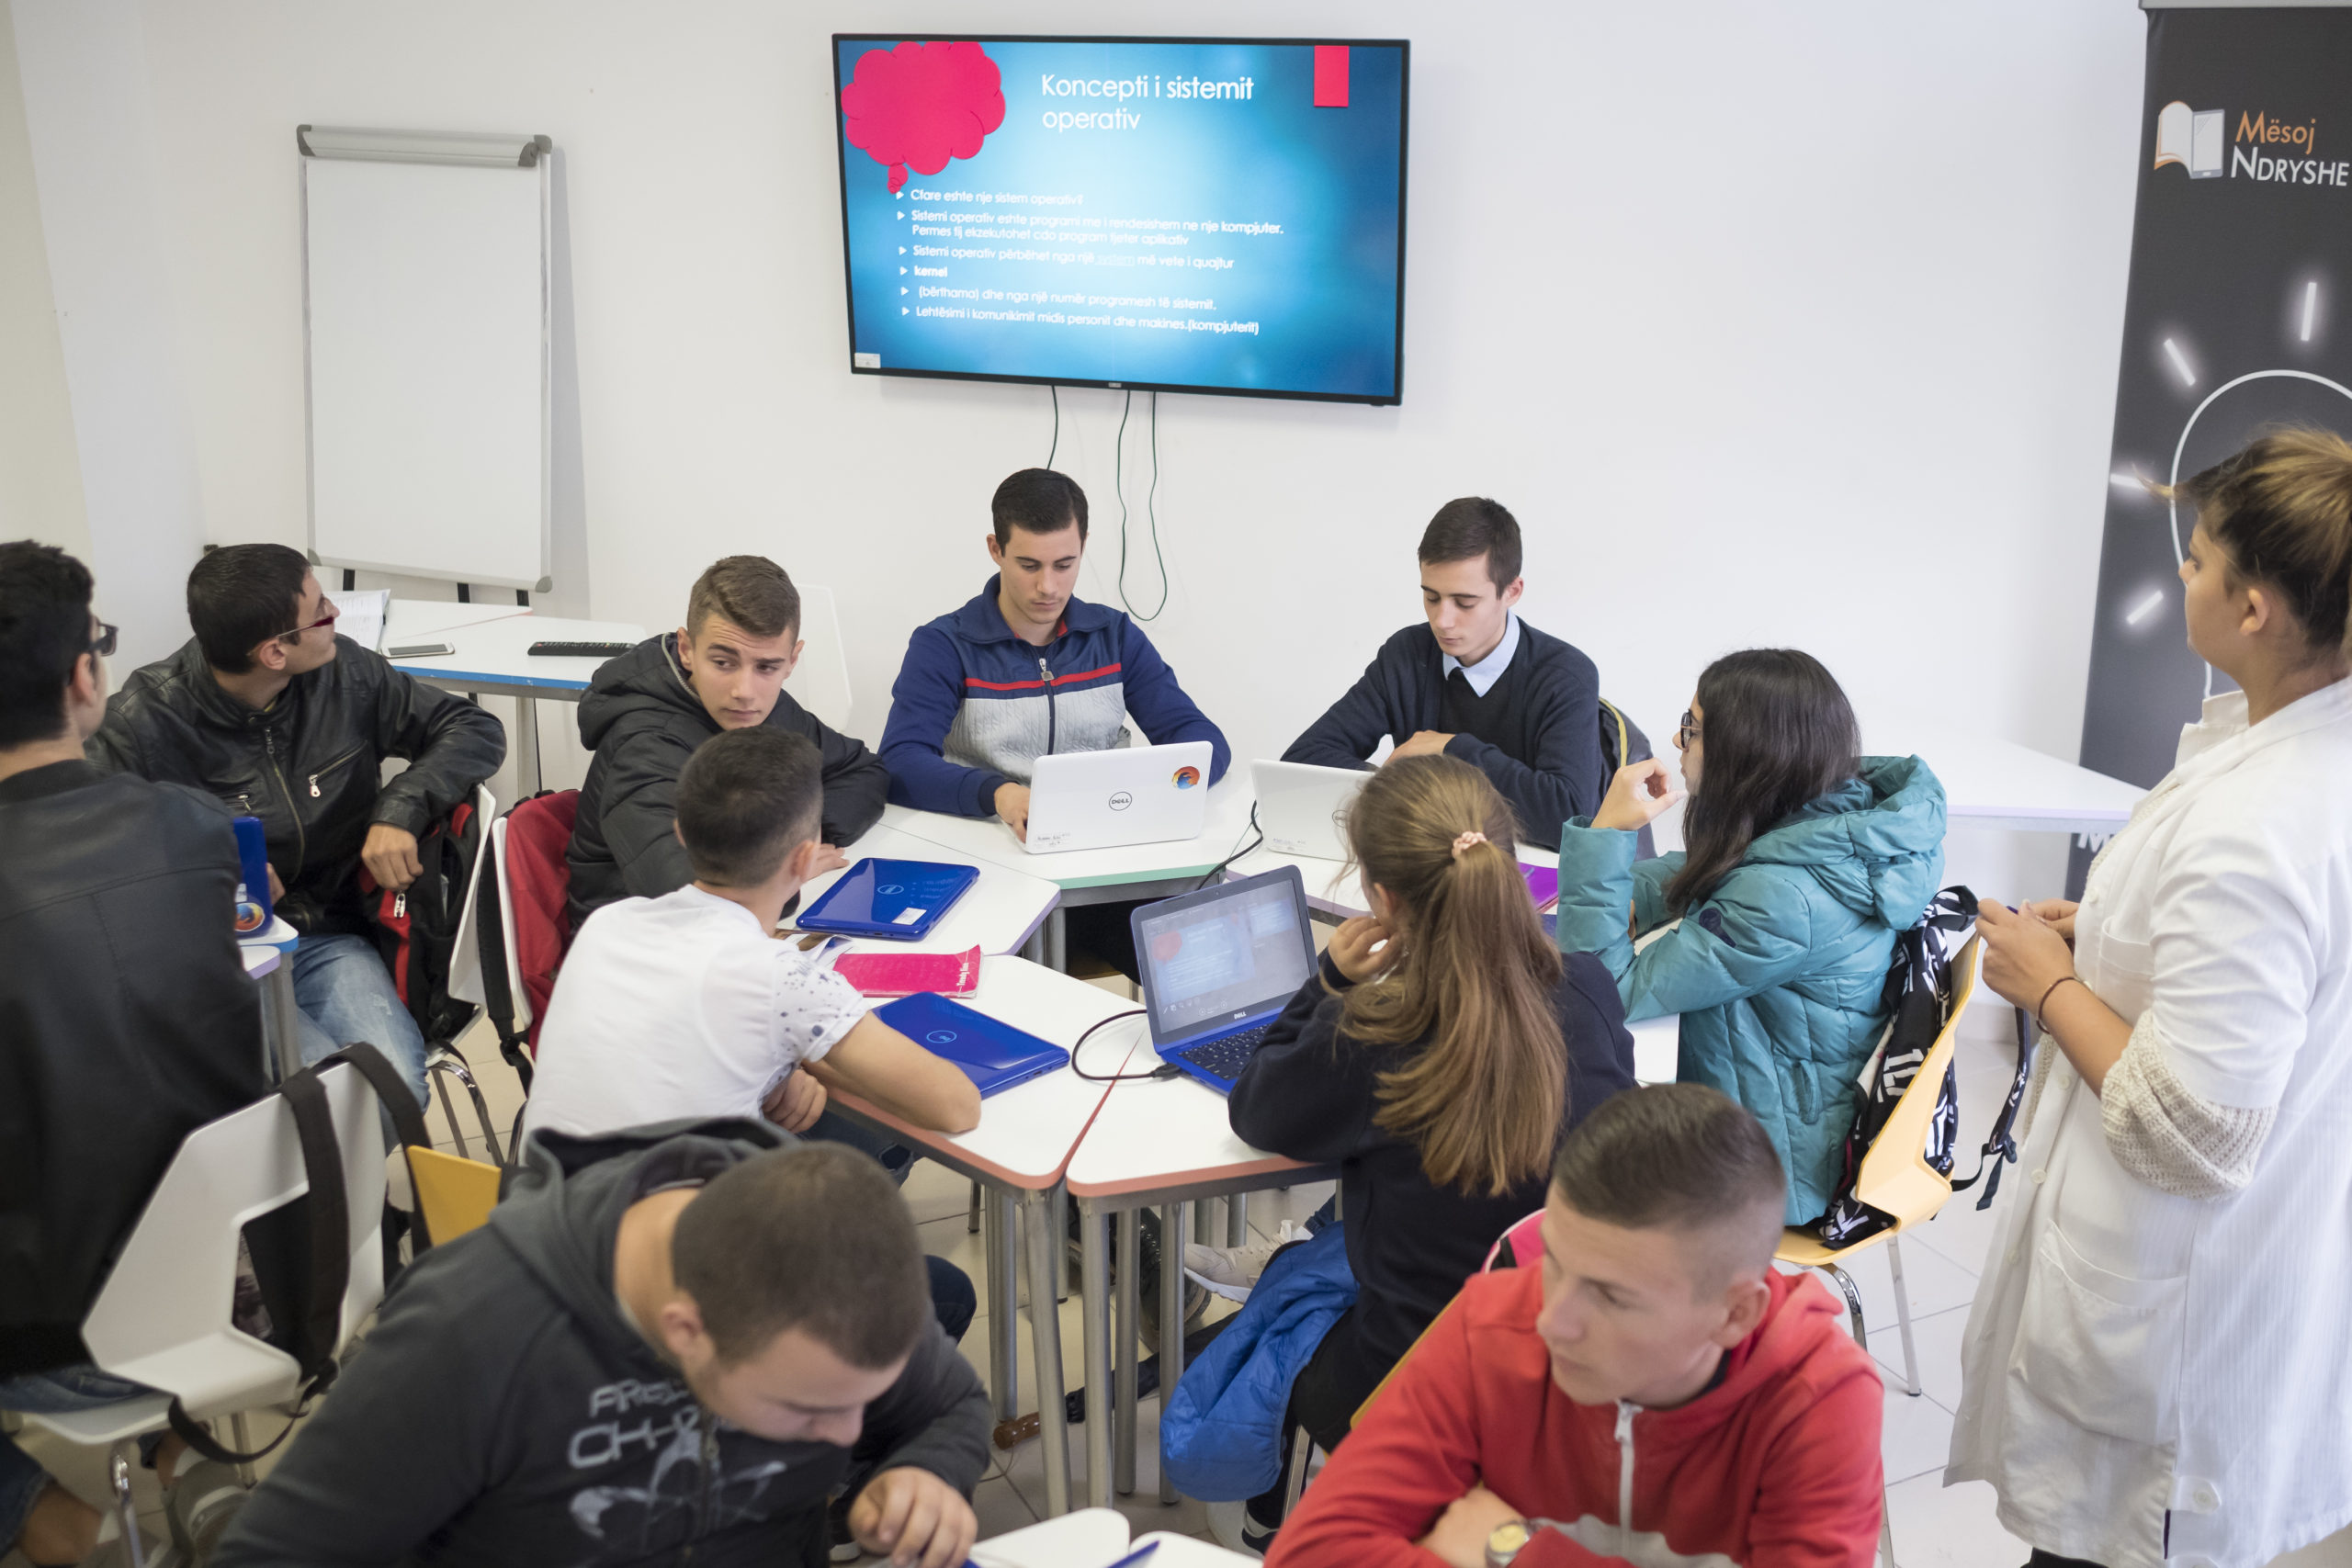 MAKING LEARNING MORE ATTRACTIVE FOR STUDENTS AND TEACHERS